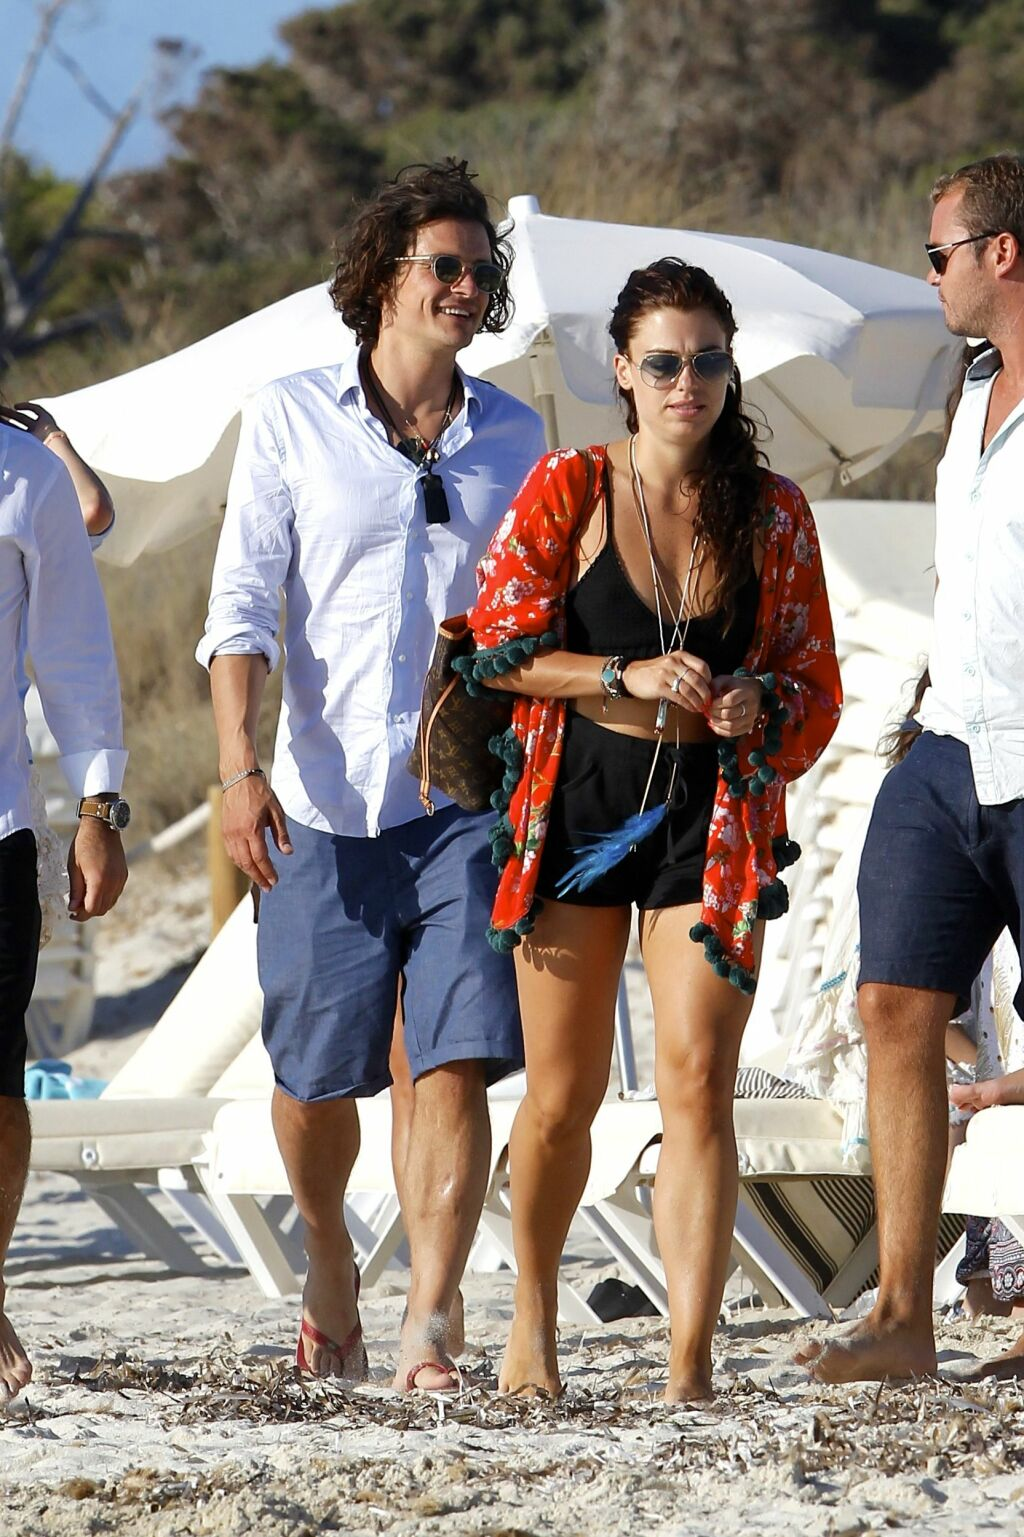 POPULÆR: Orlando Bloom ferierer for tiden på Ibiza i Middelhavet. Foto: Splash News/ All Over Press